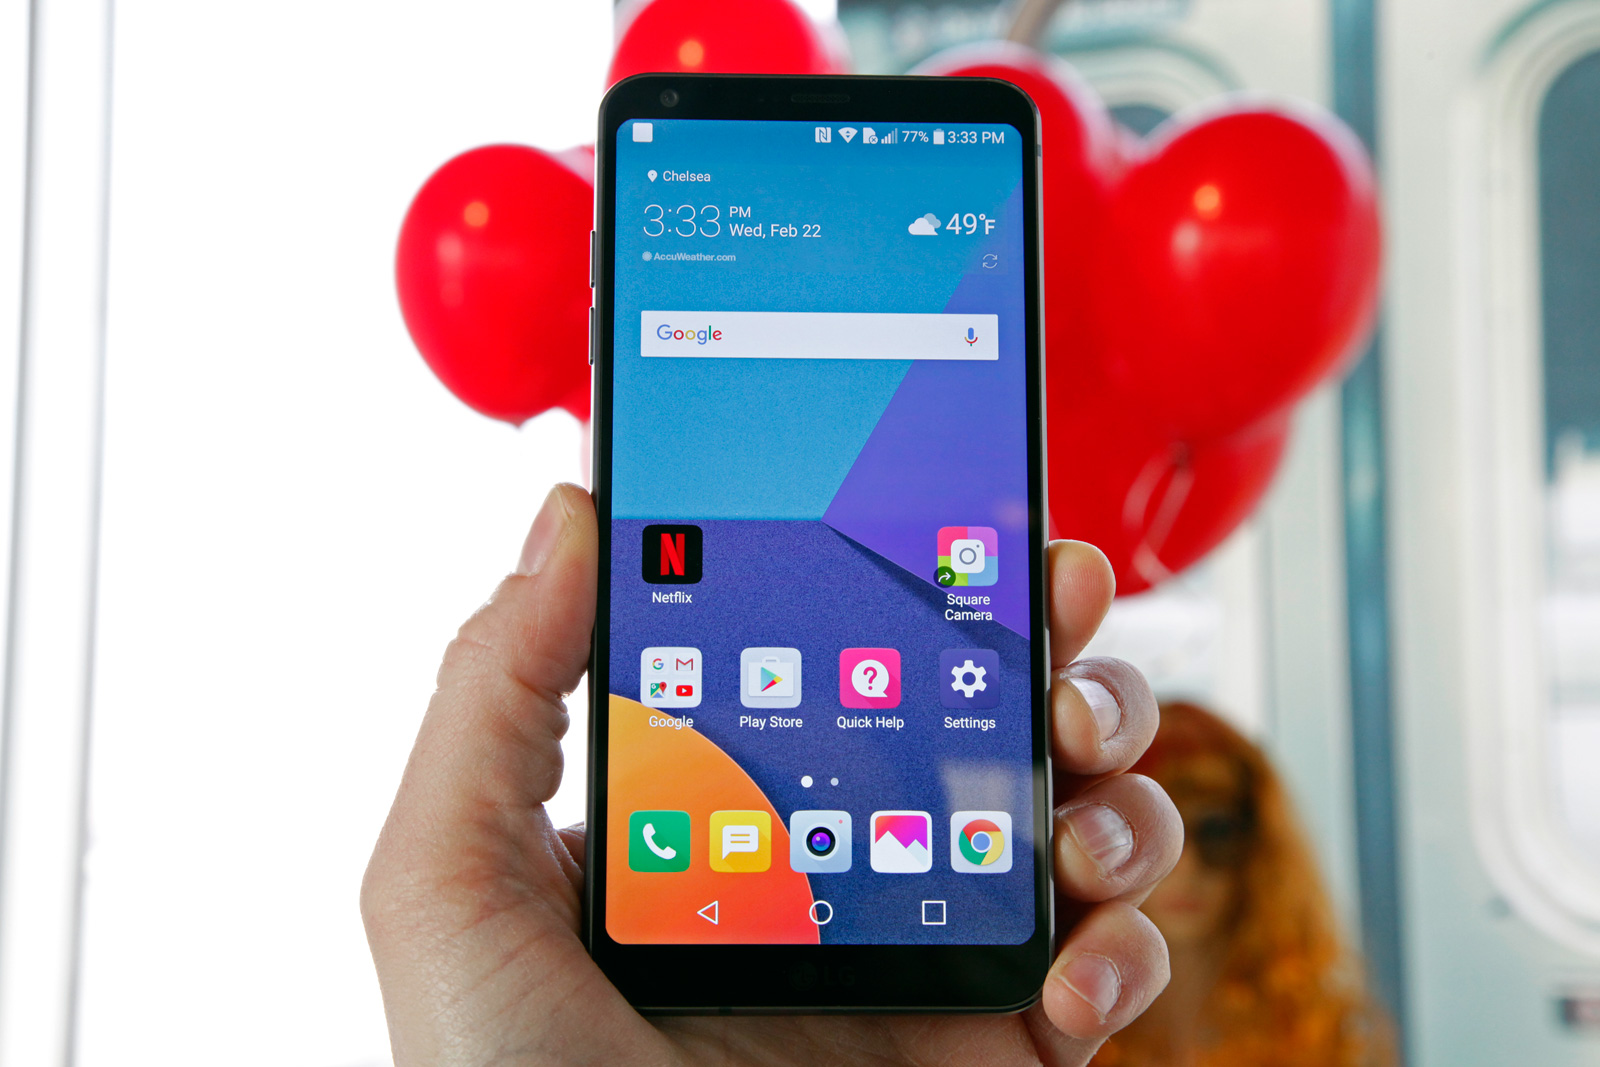 LG G6 hands-on: 42 days at the top